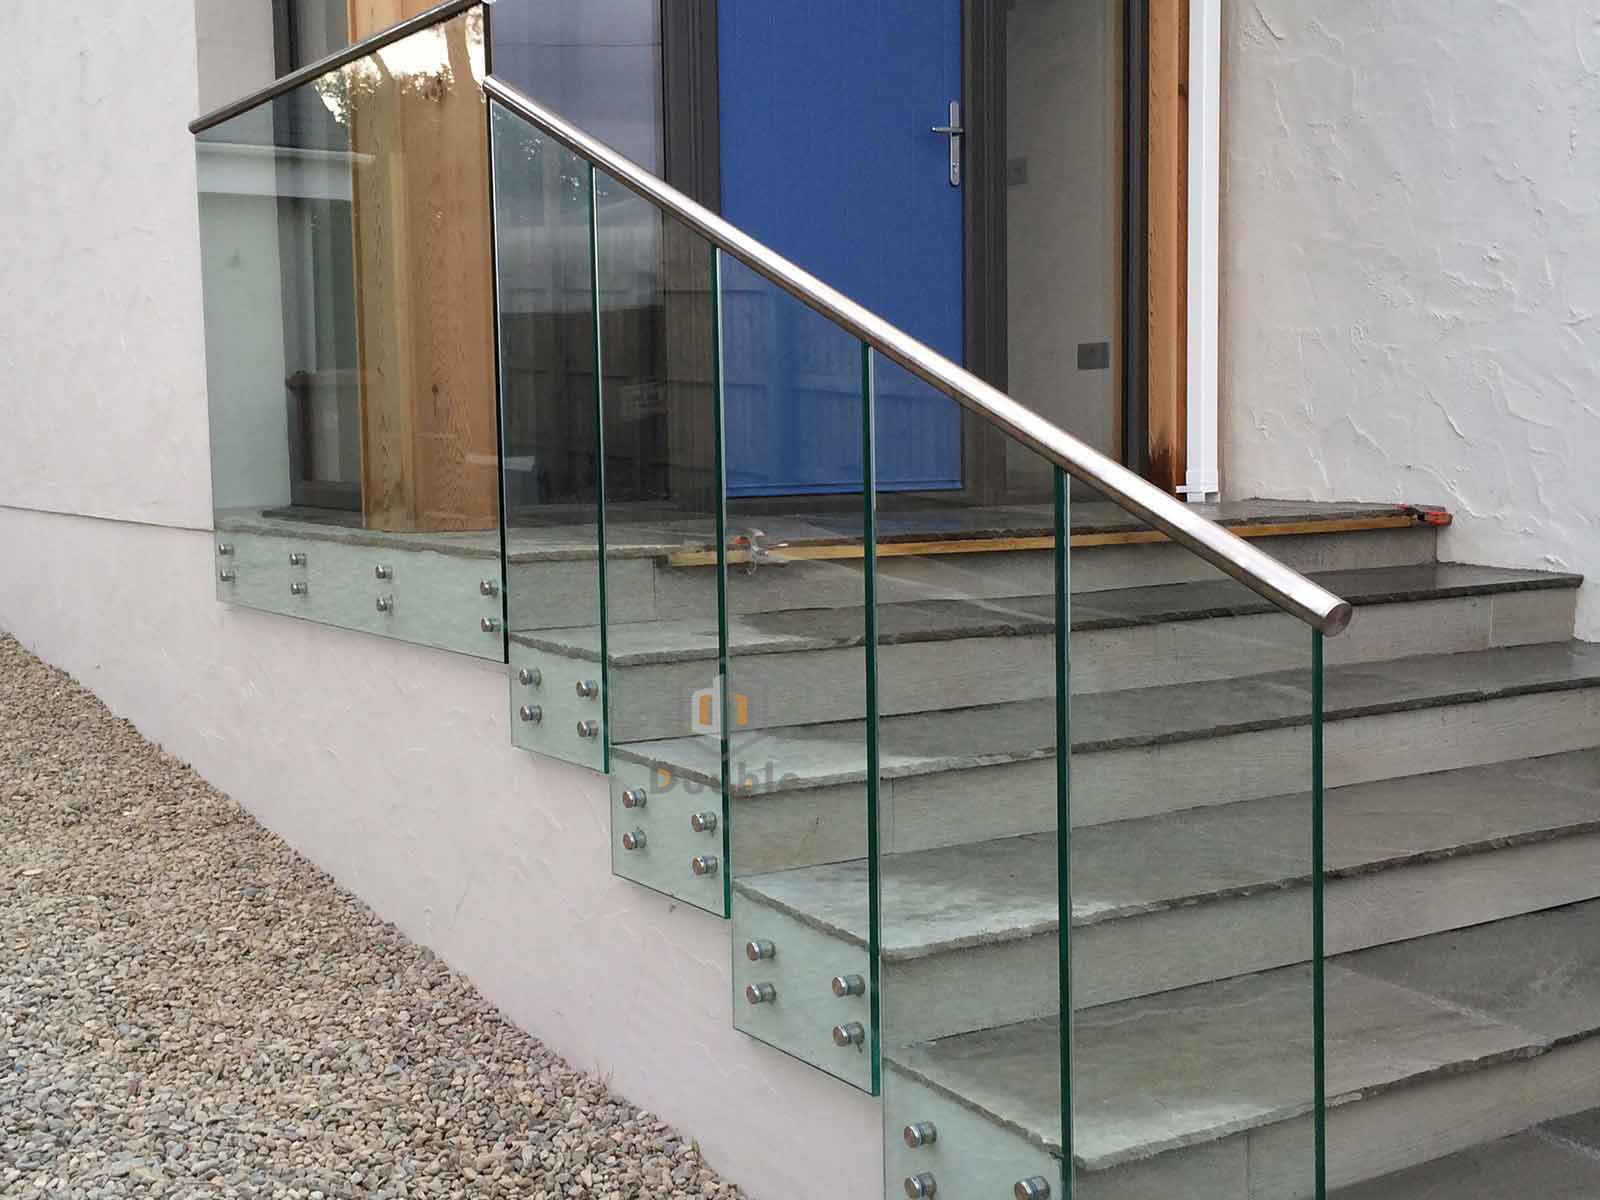 China Outdoor Stair Railing Frameless Glass Balustrade with ...